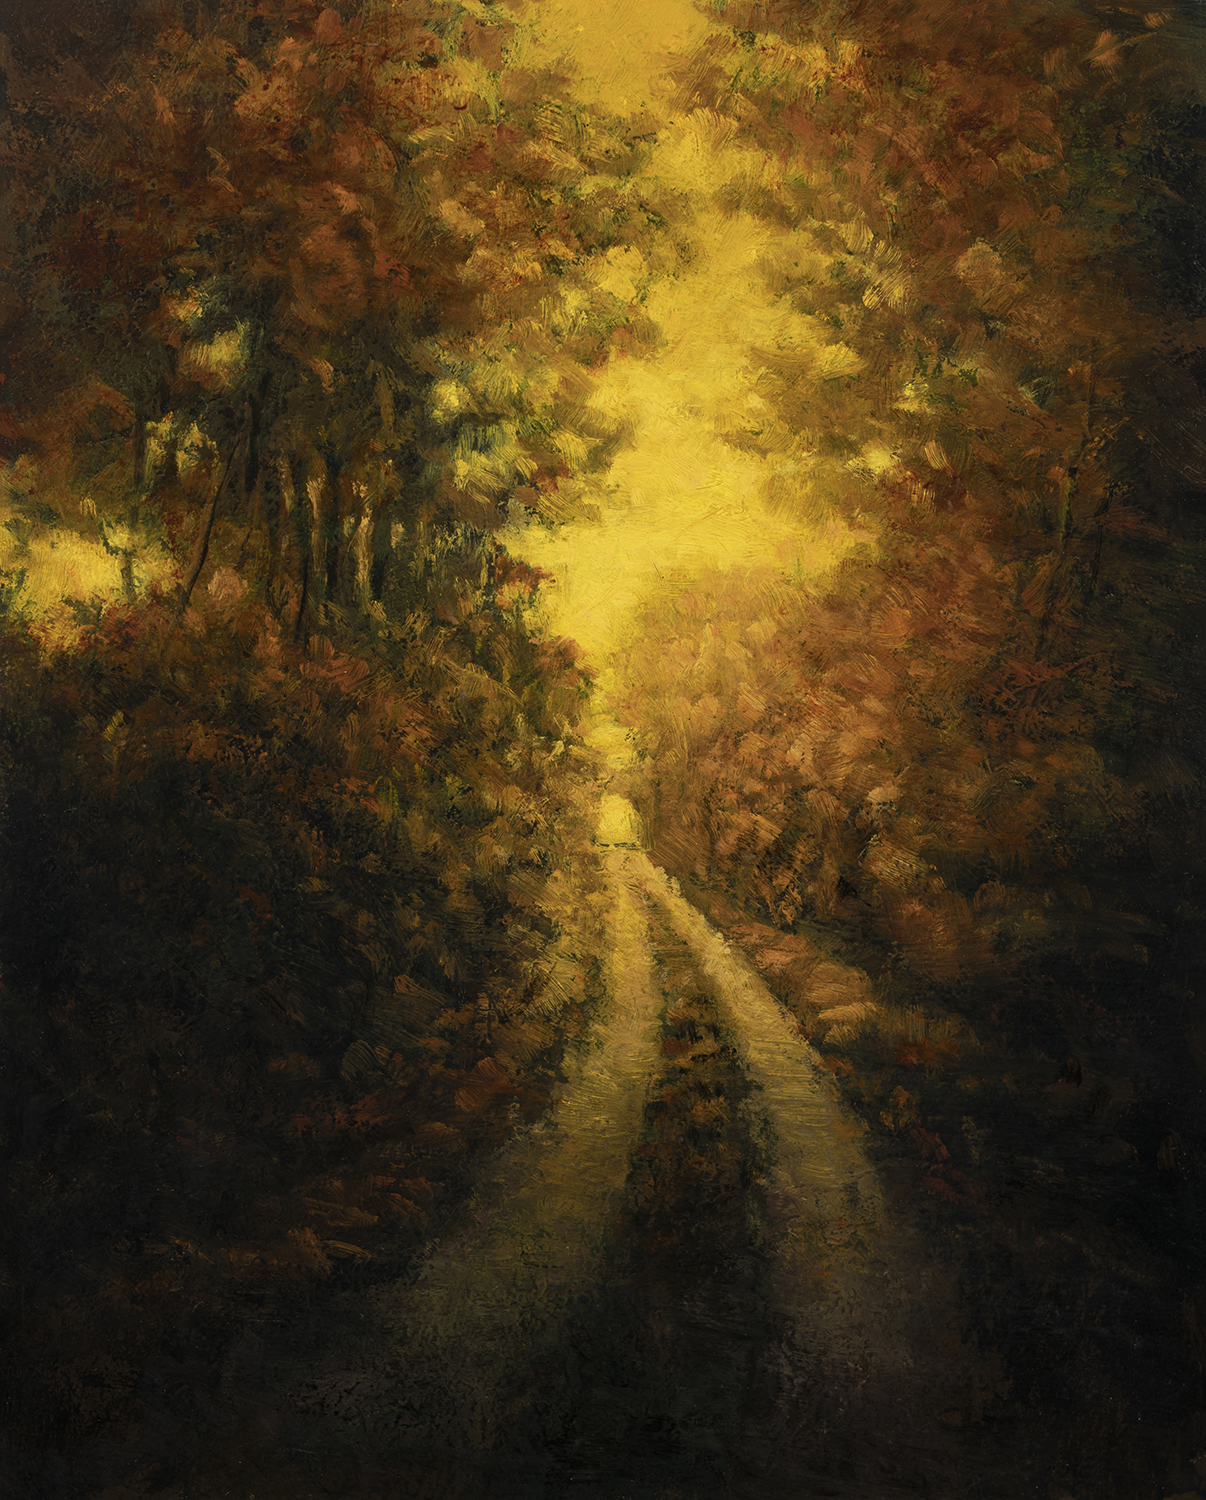 Golden Path by M Francis McCarthy - 8x10 Oil on Wood Panel